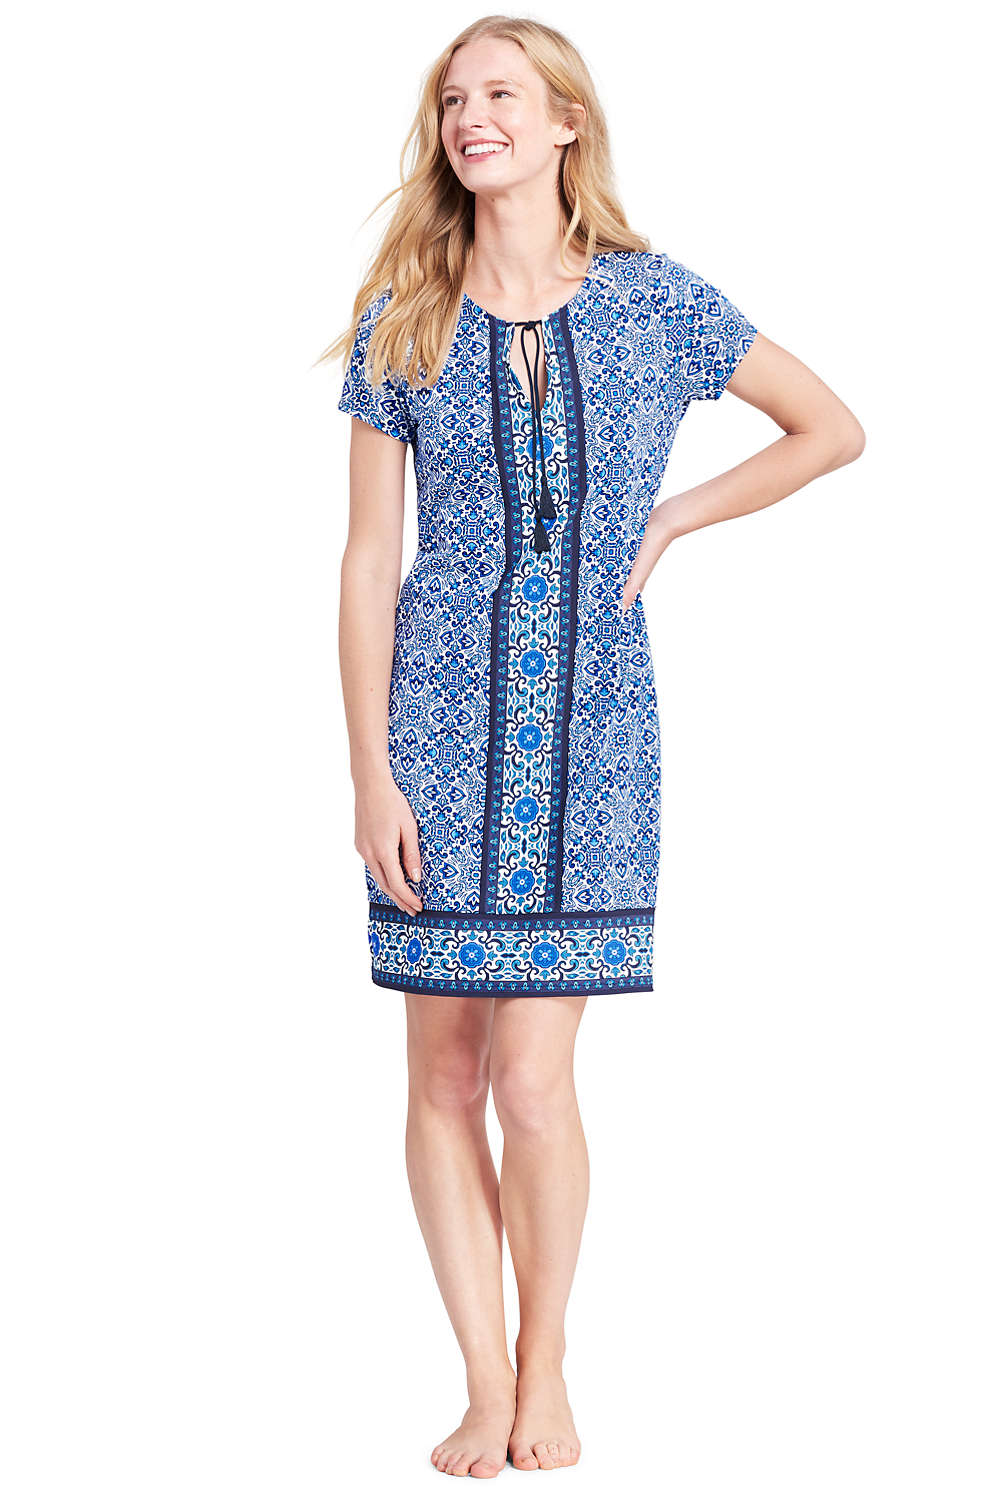 790a0ca600 Women's Notch Neck Swim Cover-up Dress from Lands' End